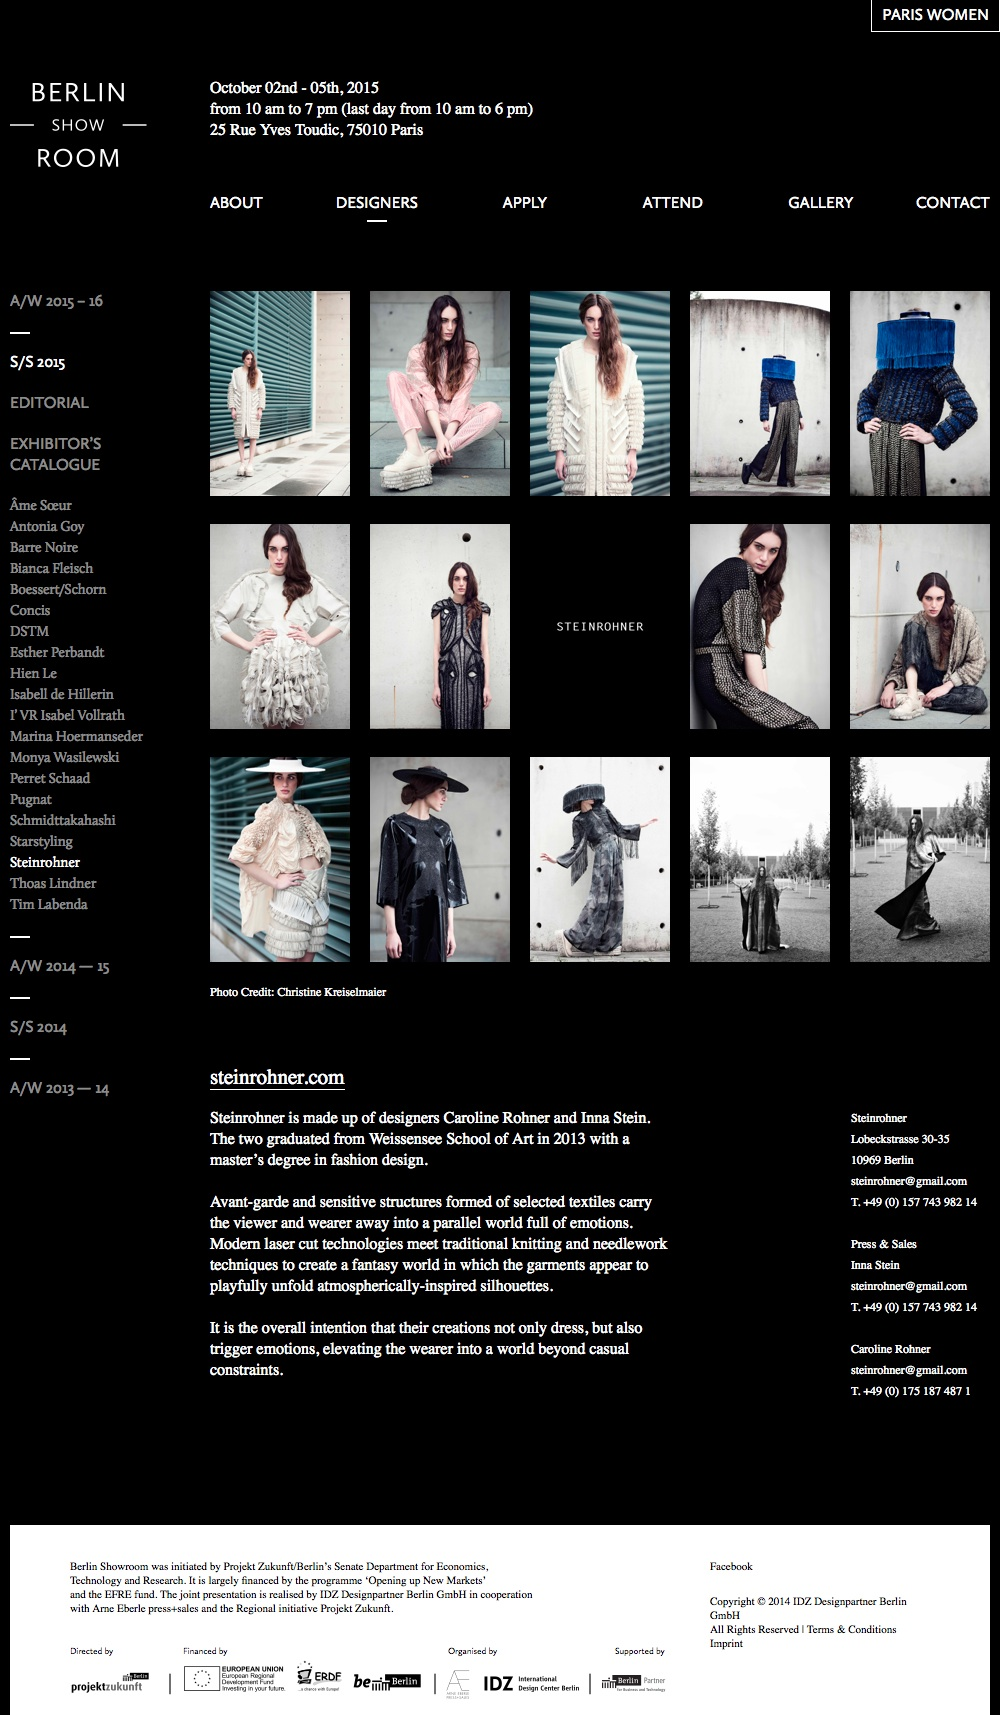 berlinshowroom.com_paris-women_designer_ss2015_steinrohner_.jpg